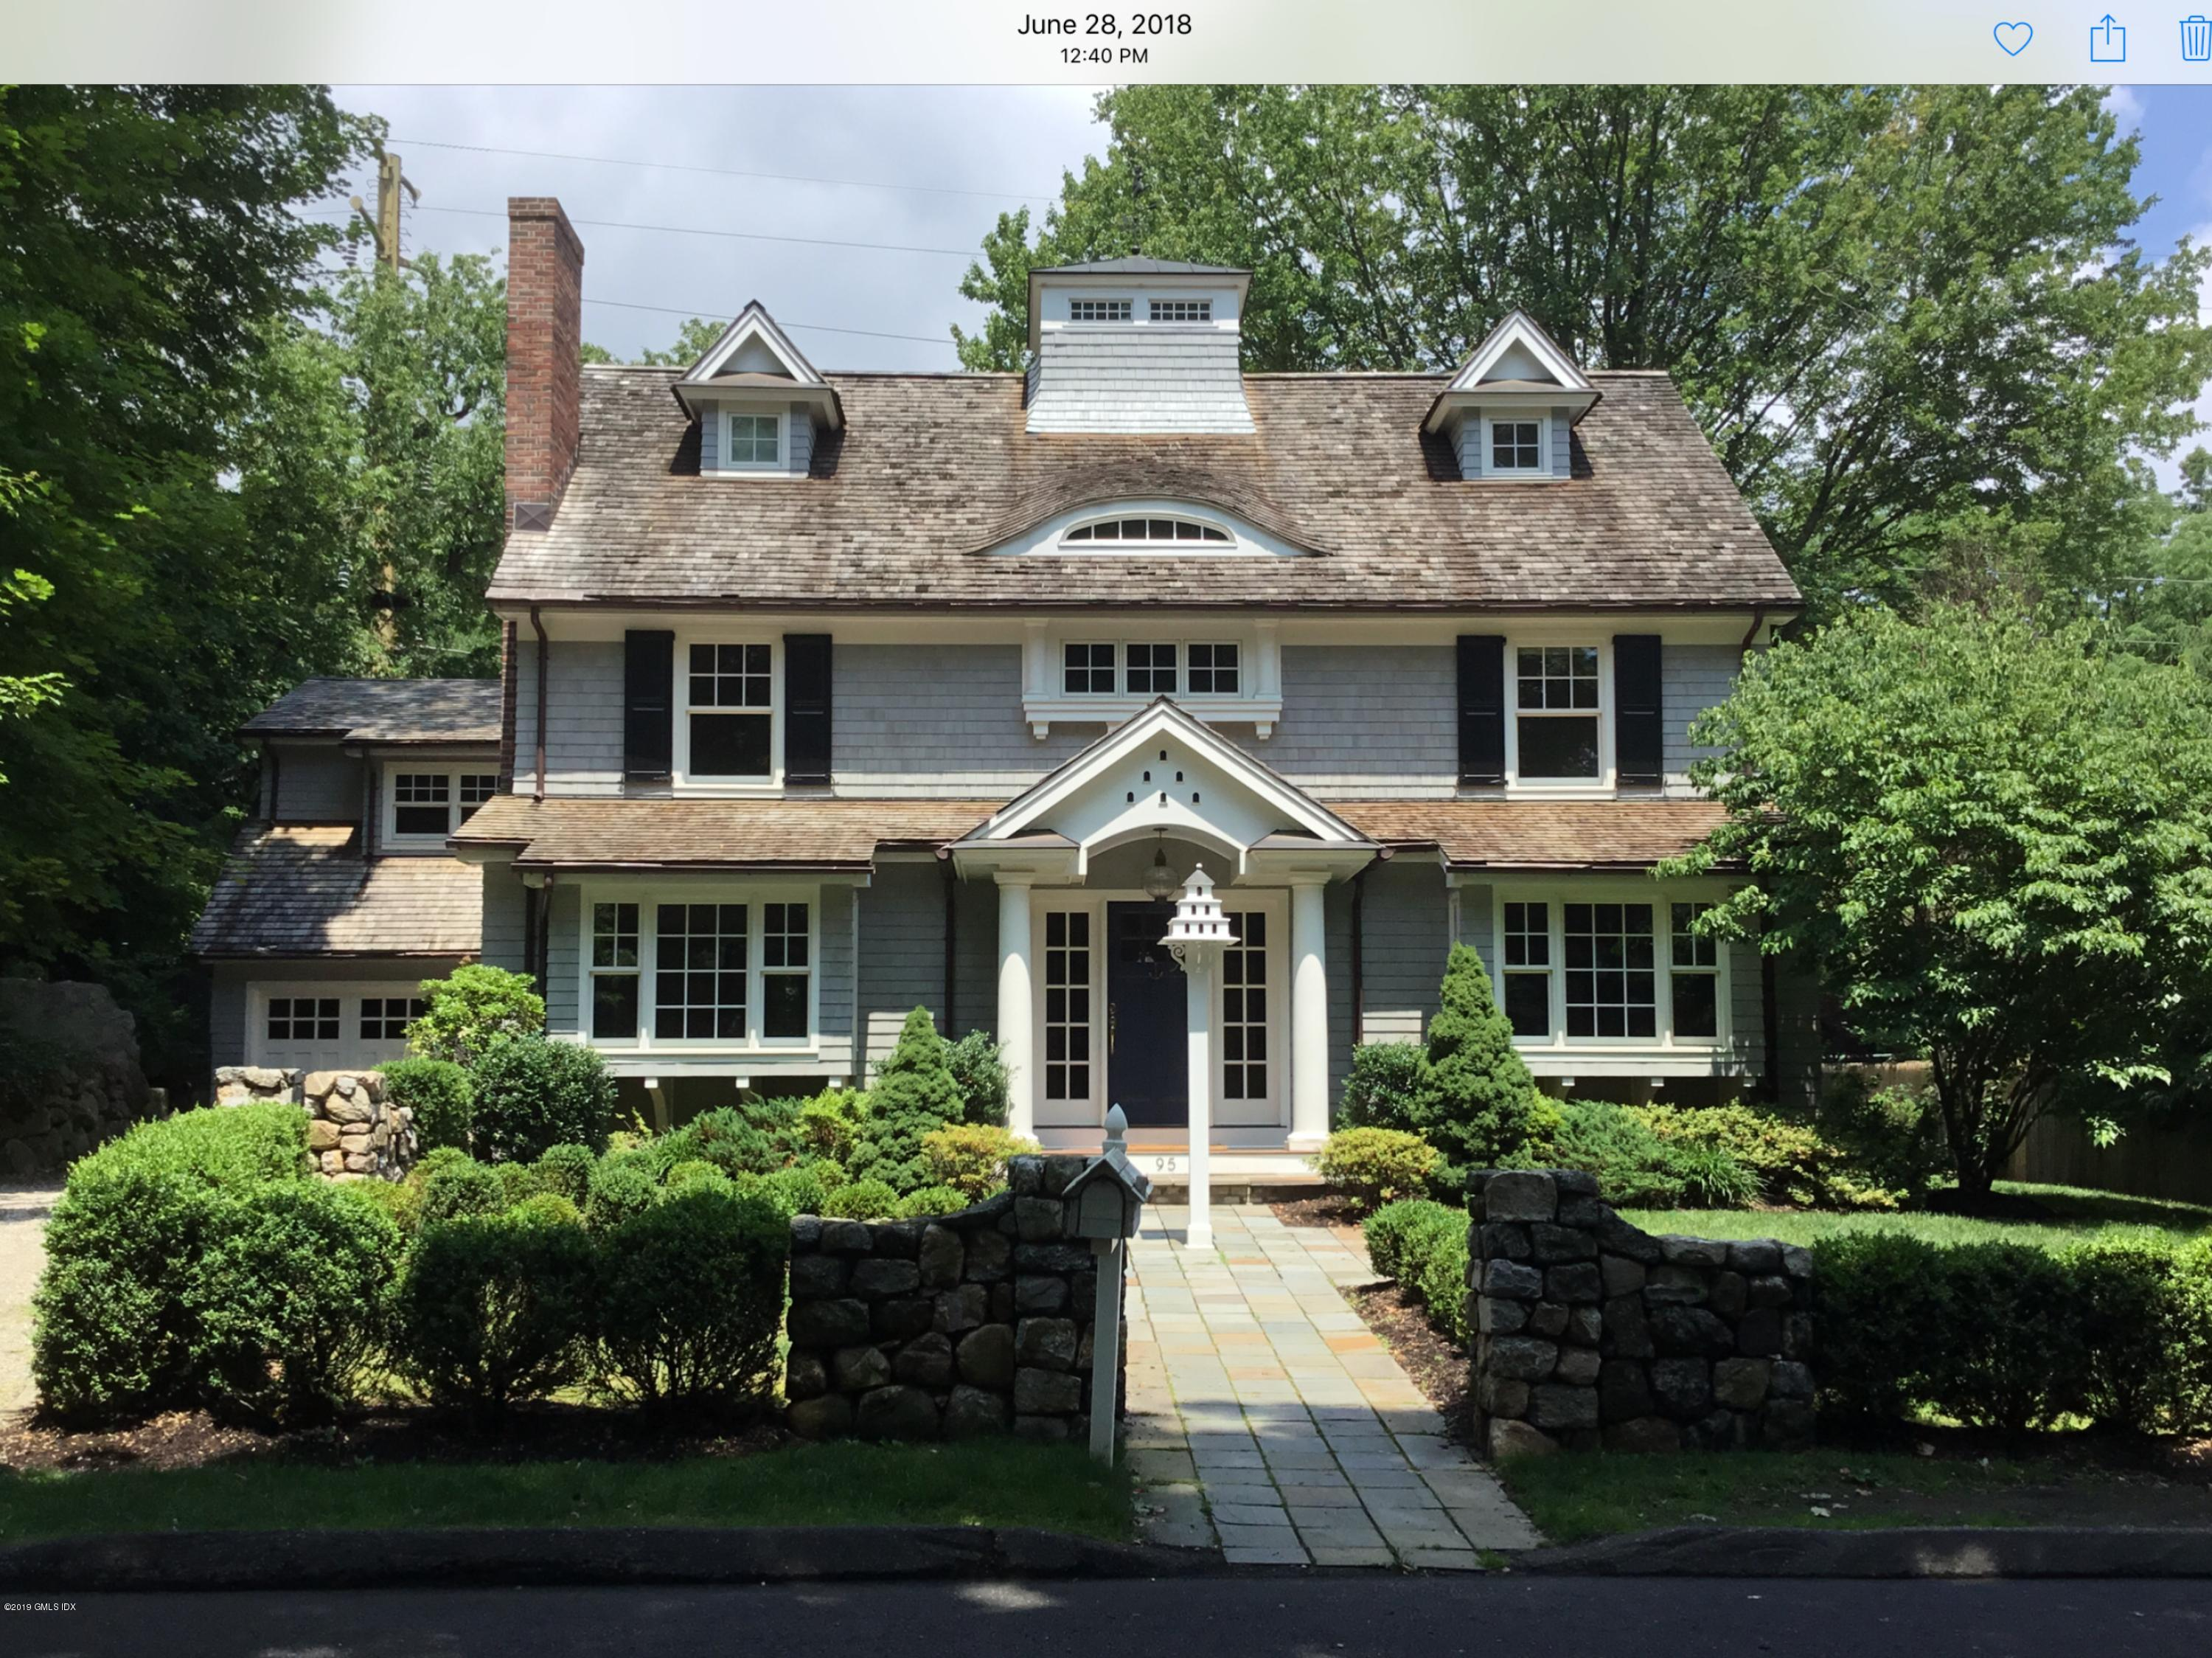 95 Summit Road,Riverside,Connecticut 06878,5 Bedrooms Bedrooms,4 BathroomsBathrooms,Single family,Summit,106212